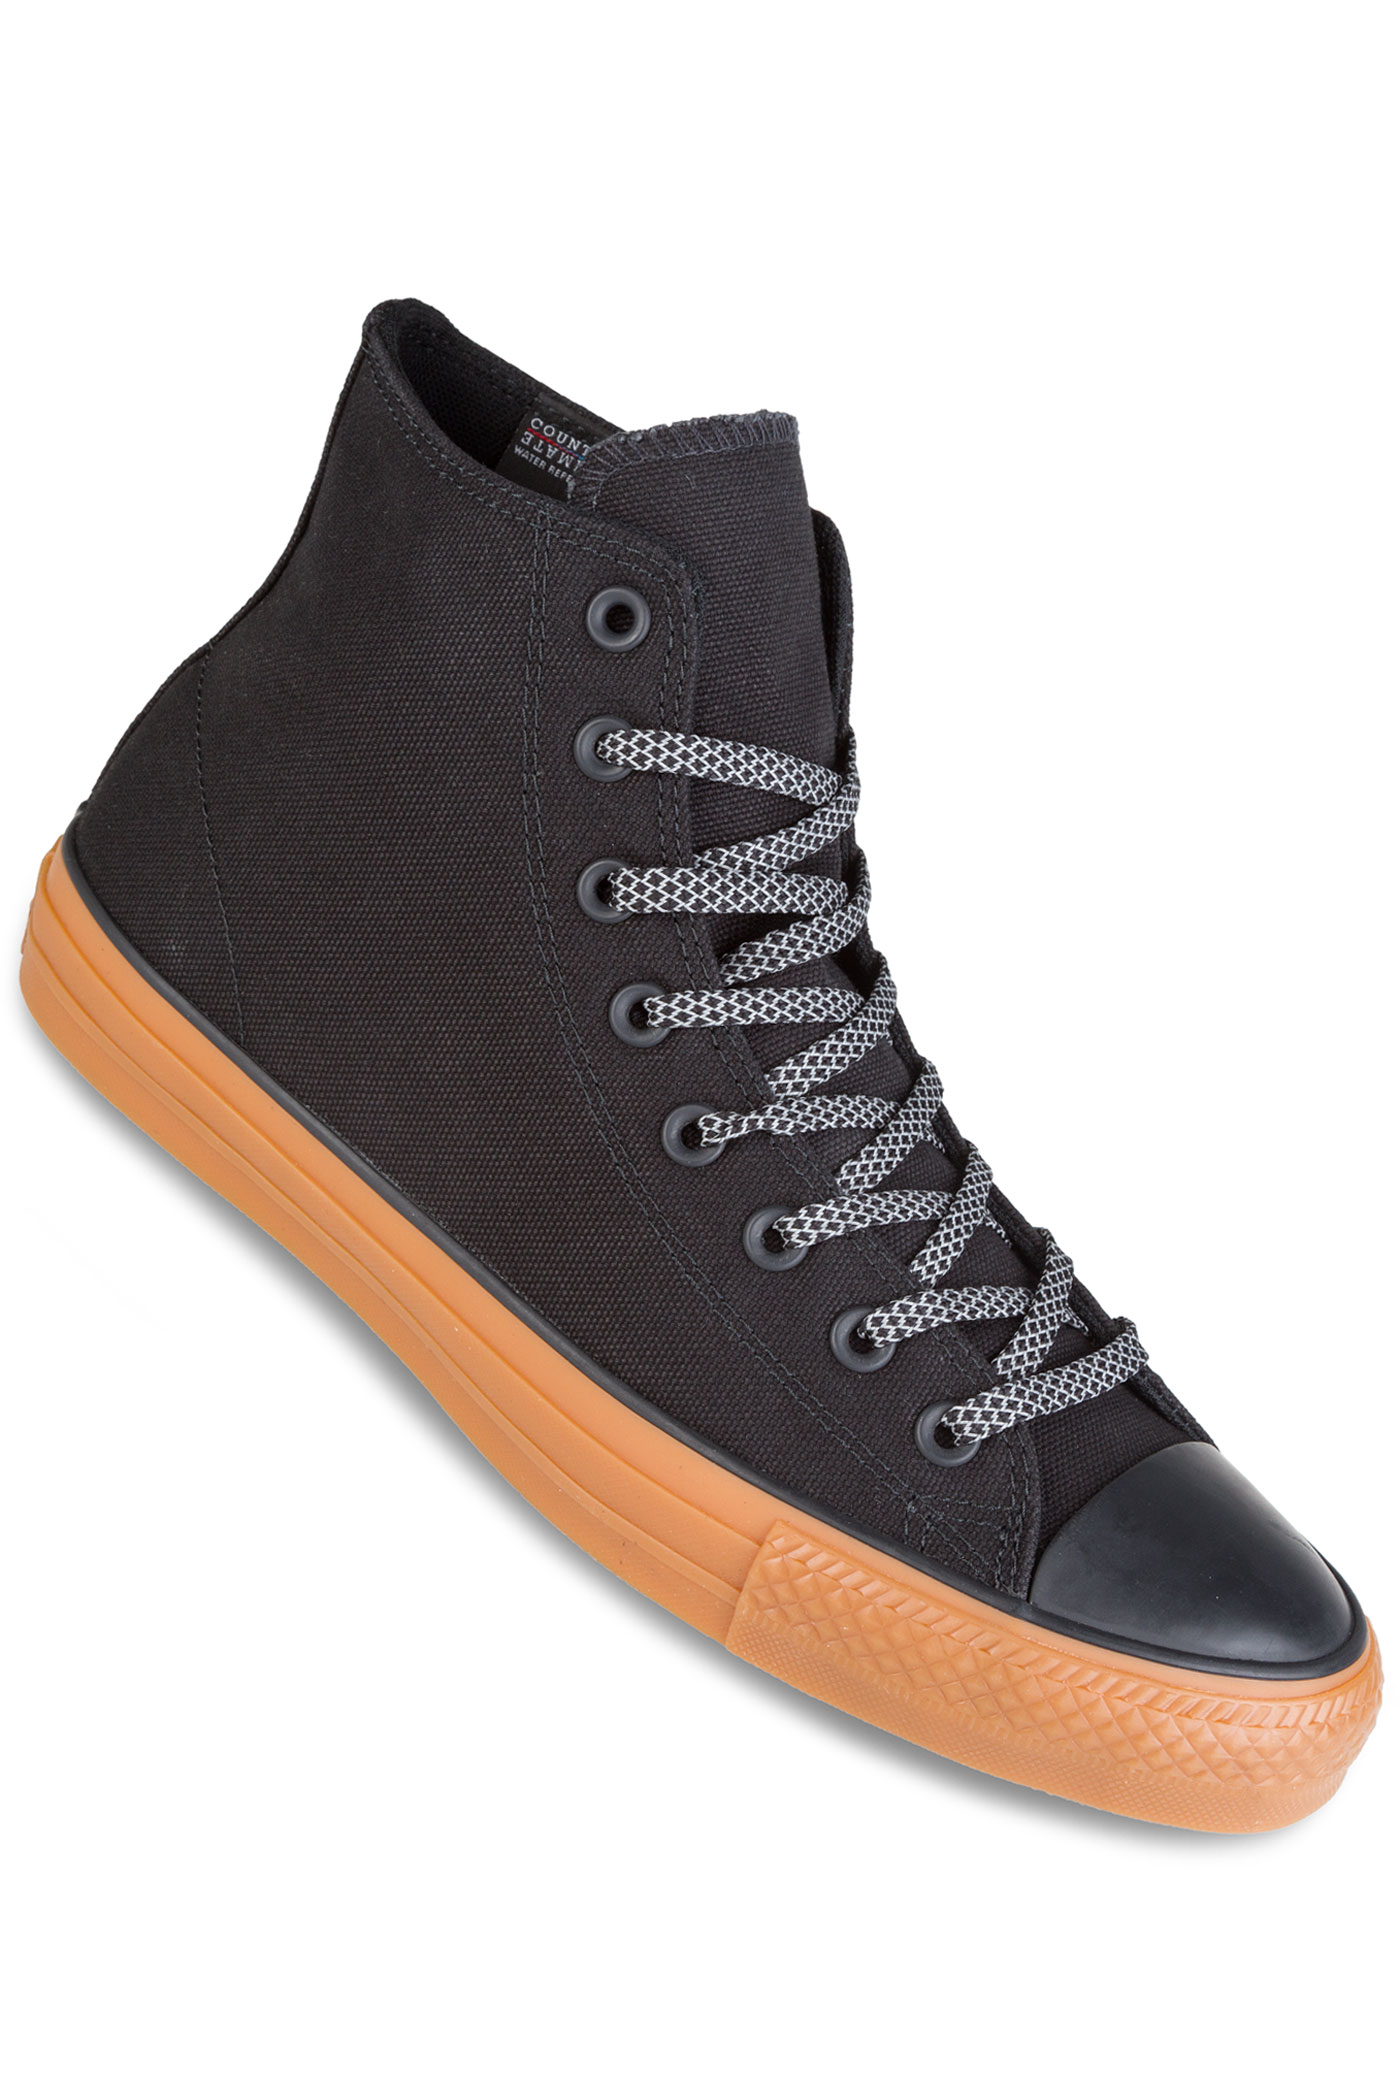 Converse CTAS Pro Shoe (black black gum) buy at skatedeluxe 3ede1cb77